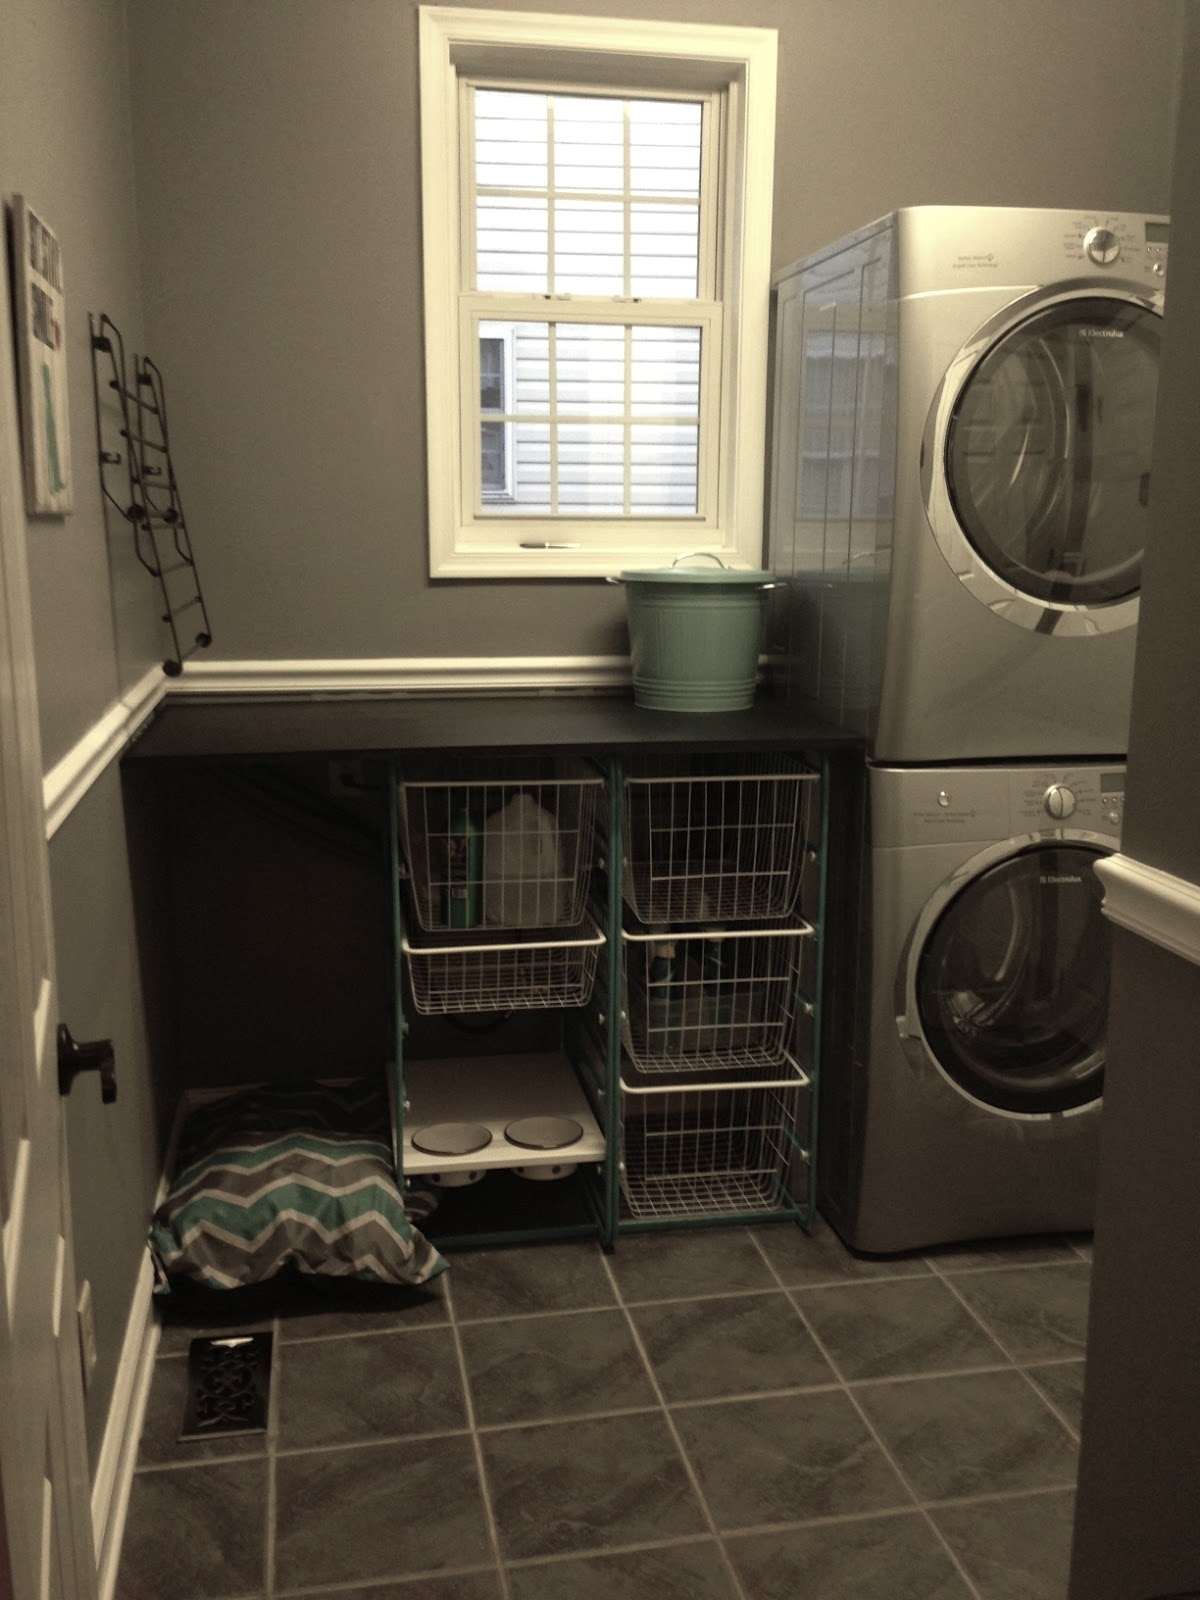 create quick laundry room update ellis page. Black Bedroom Furniture Sets. Home Design Ideas